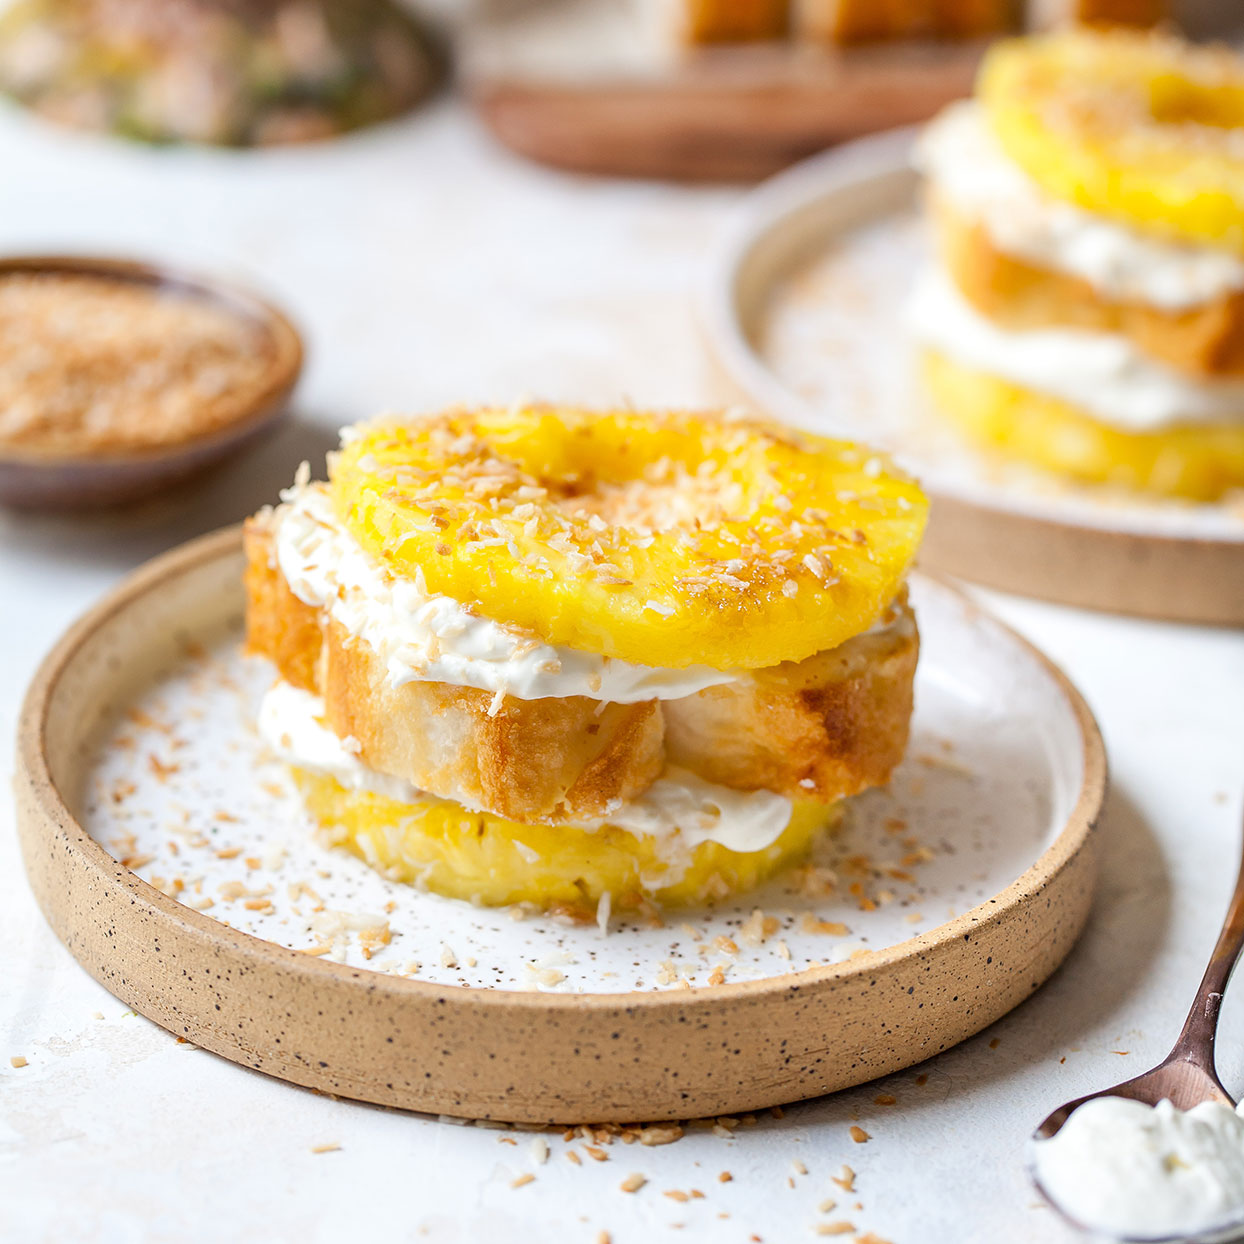 Prepare this beautiful stacked cream and pineapple napoleons recipe when you want a special dessert without a lot of effort. We use store-bought angel food cake to keep this pineapple dessert brilliantly simple and fast.